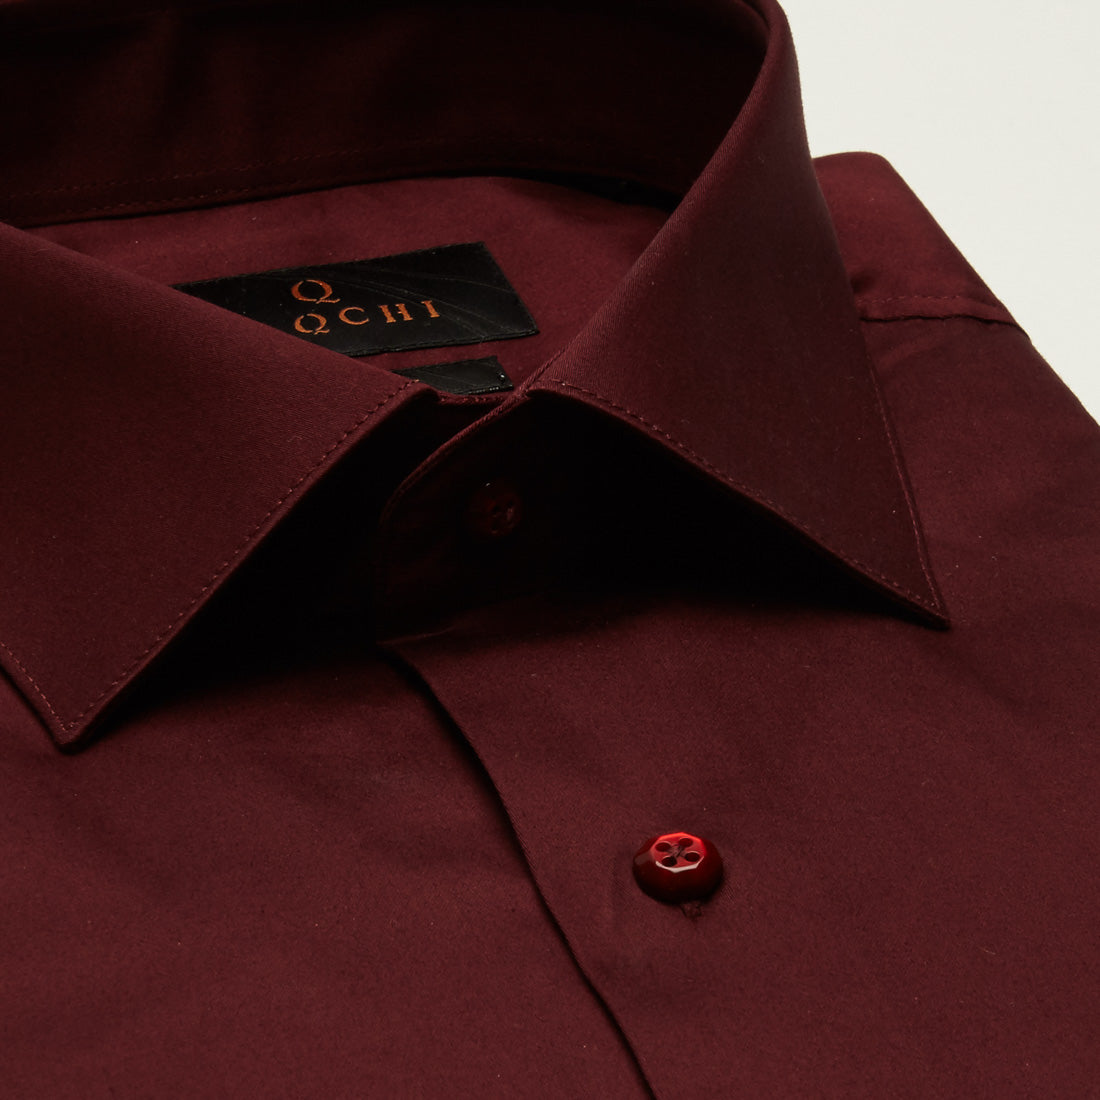 dca887cd536e SLIM FIT LONG SLEEVE MAROON BARCELONA COTTON SHIRT - BAQCHI